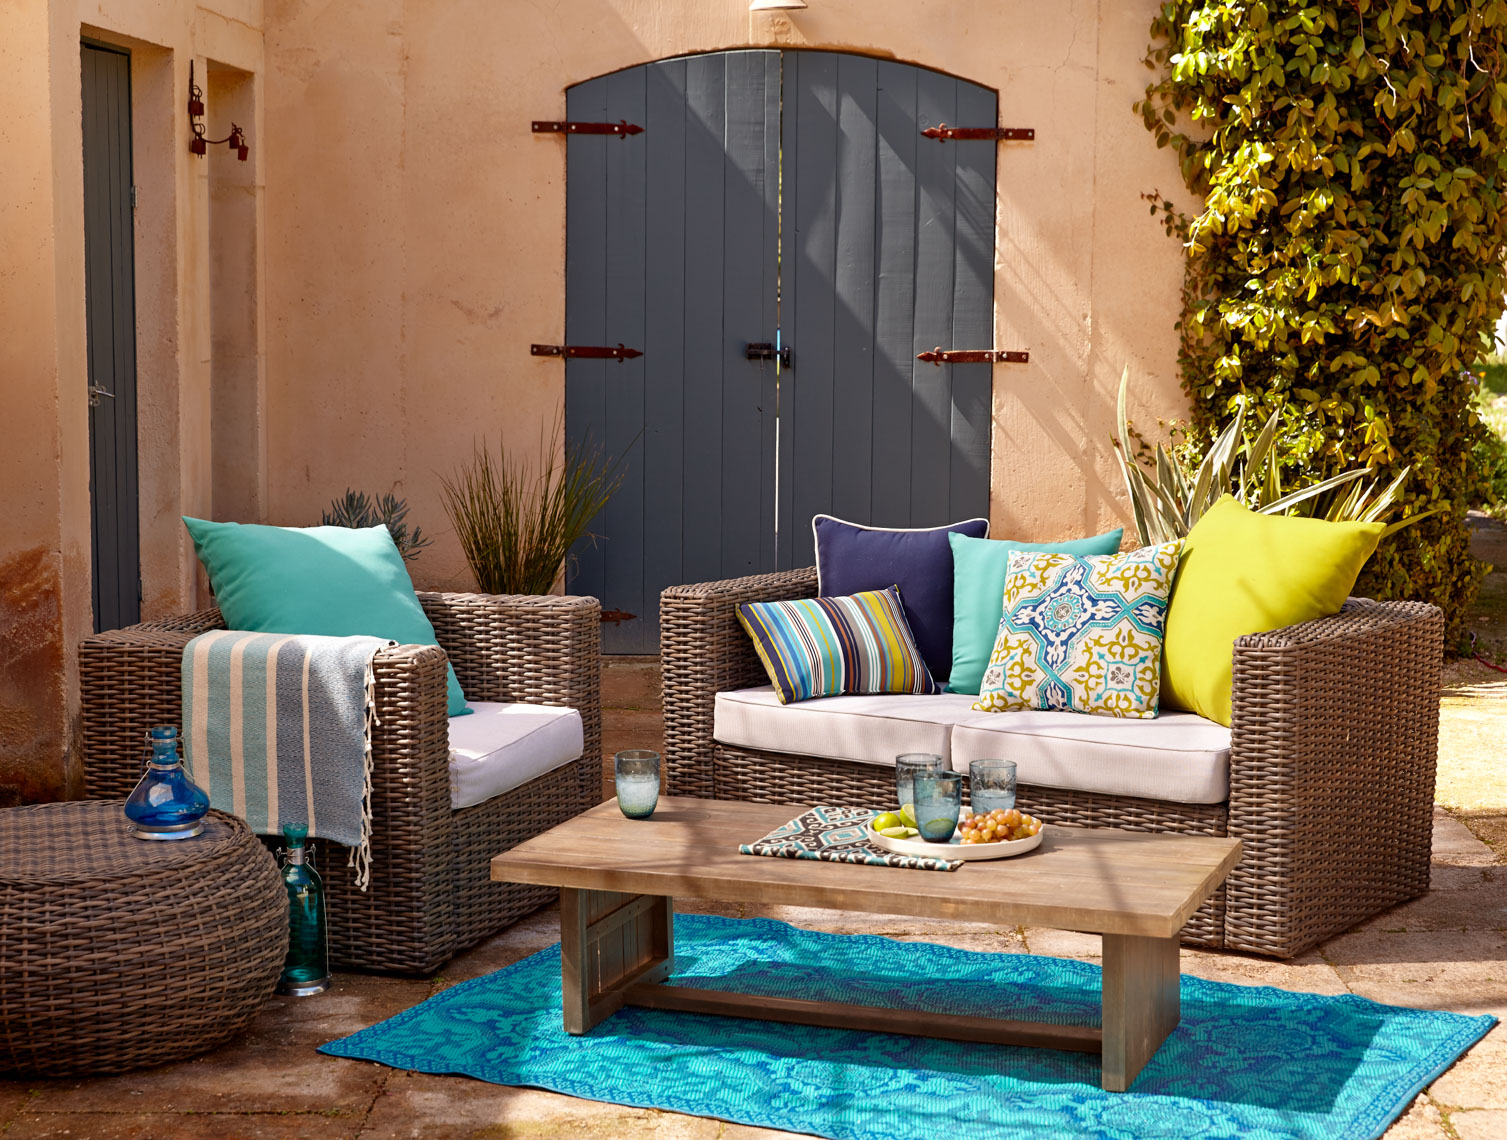 Brown Wicker outdoor furniture set with colorful cushions on blue rug in courtyard San Francisco lifestyle photographer